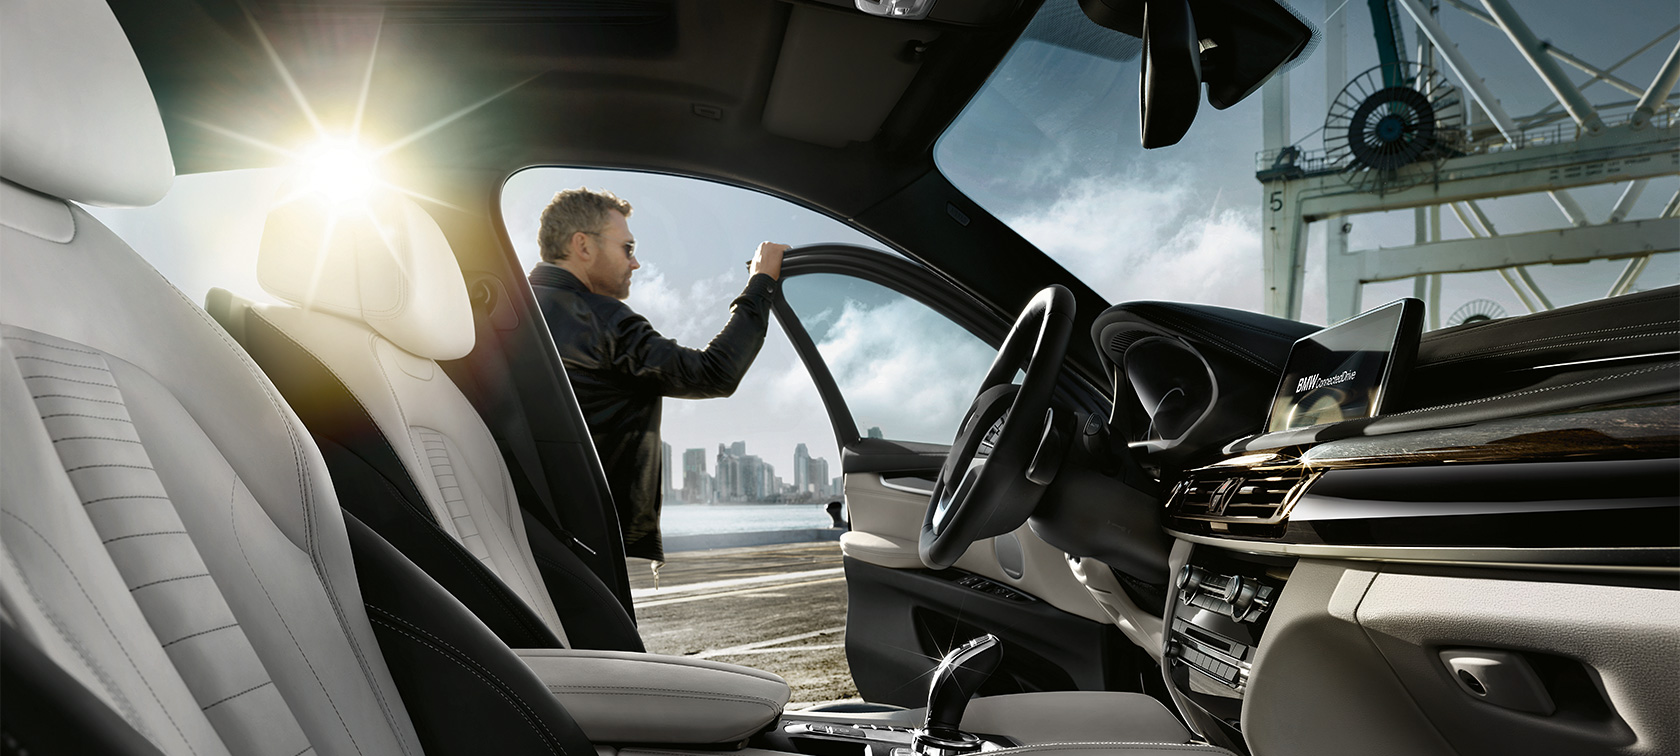 BMW X Series X6: white and black interior design with sunlight.